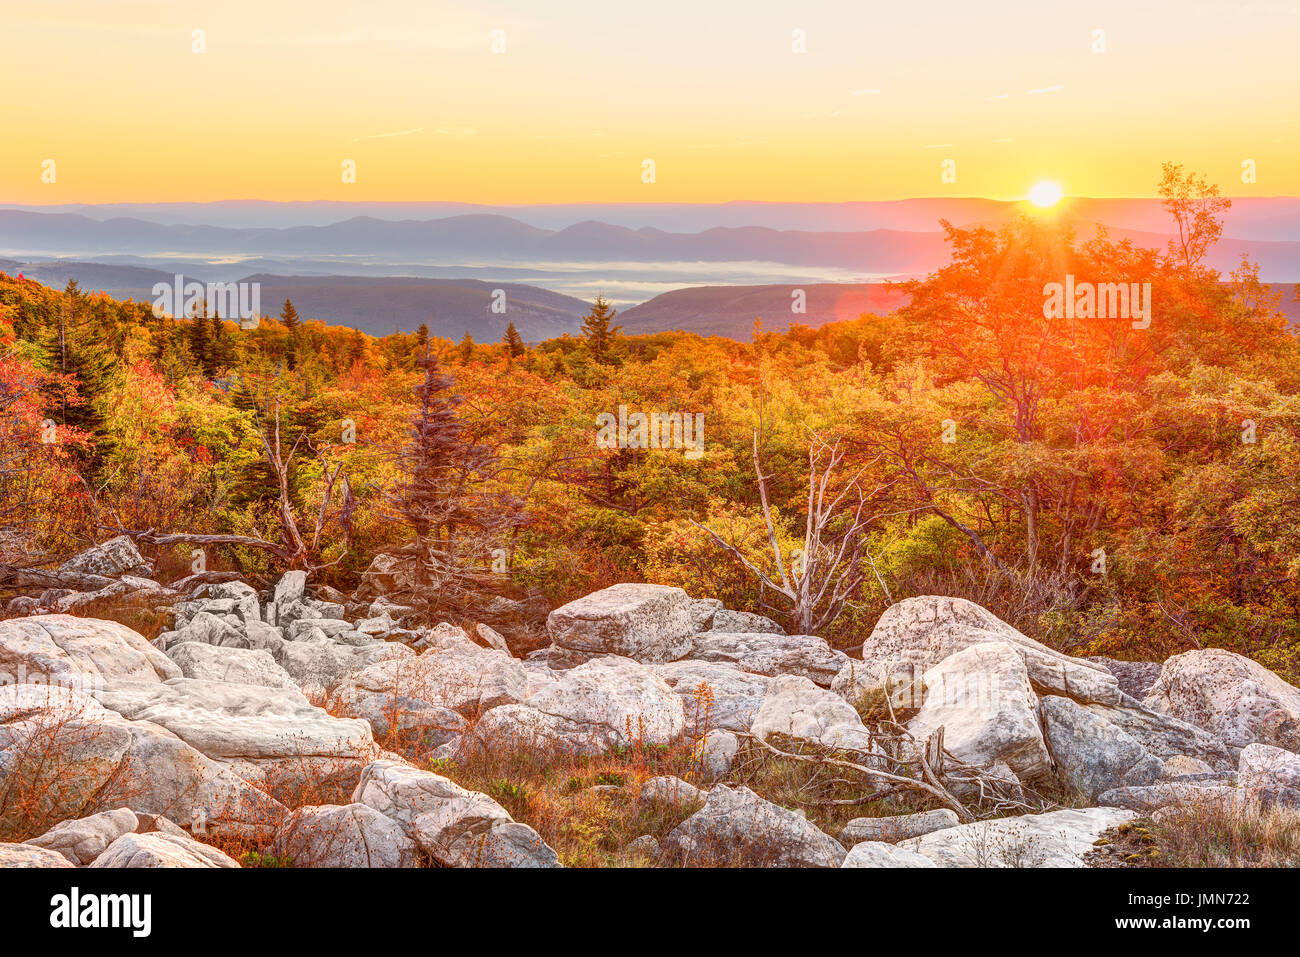 Bear rocks sunrise during autumn with rocky landscape in Dolly Sods, West Virginia - Stock Image